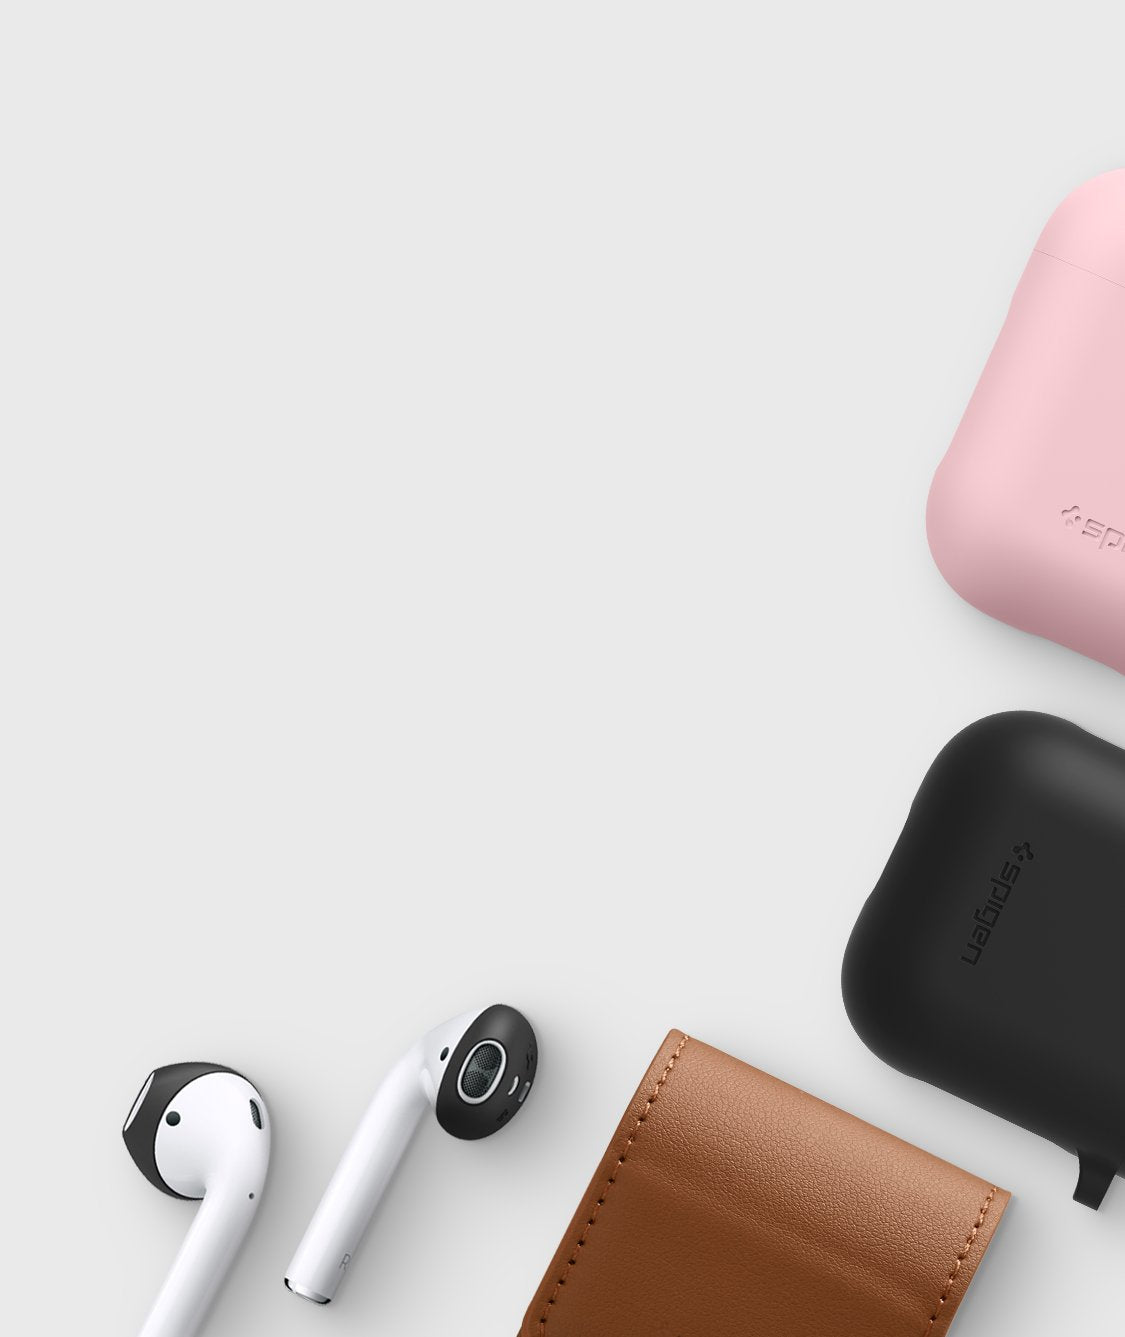 Spigen Cases And Accessories for Apple AirPods